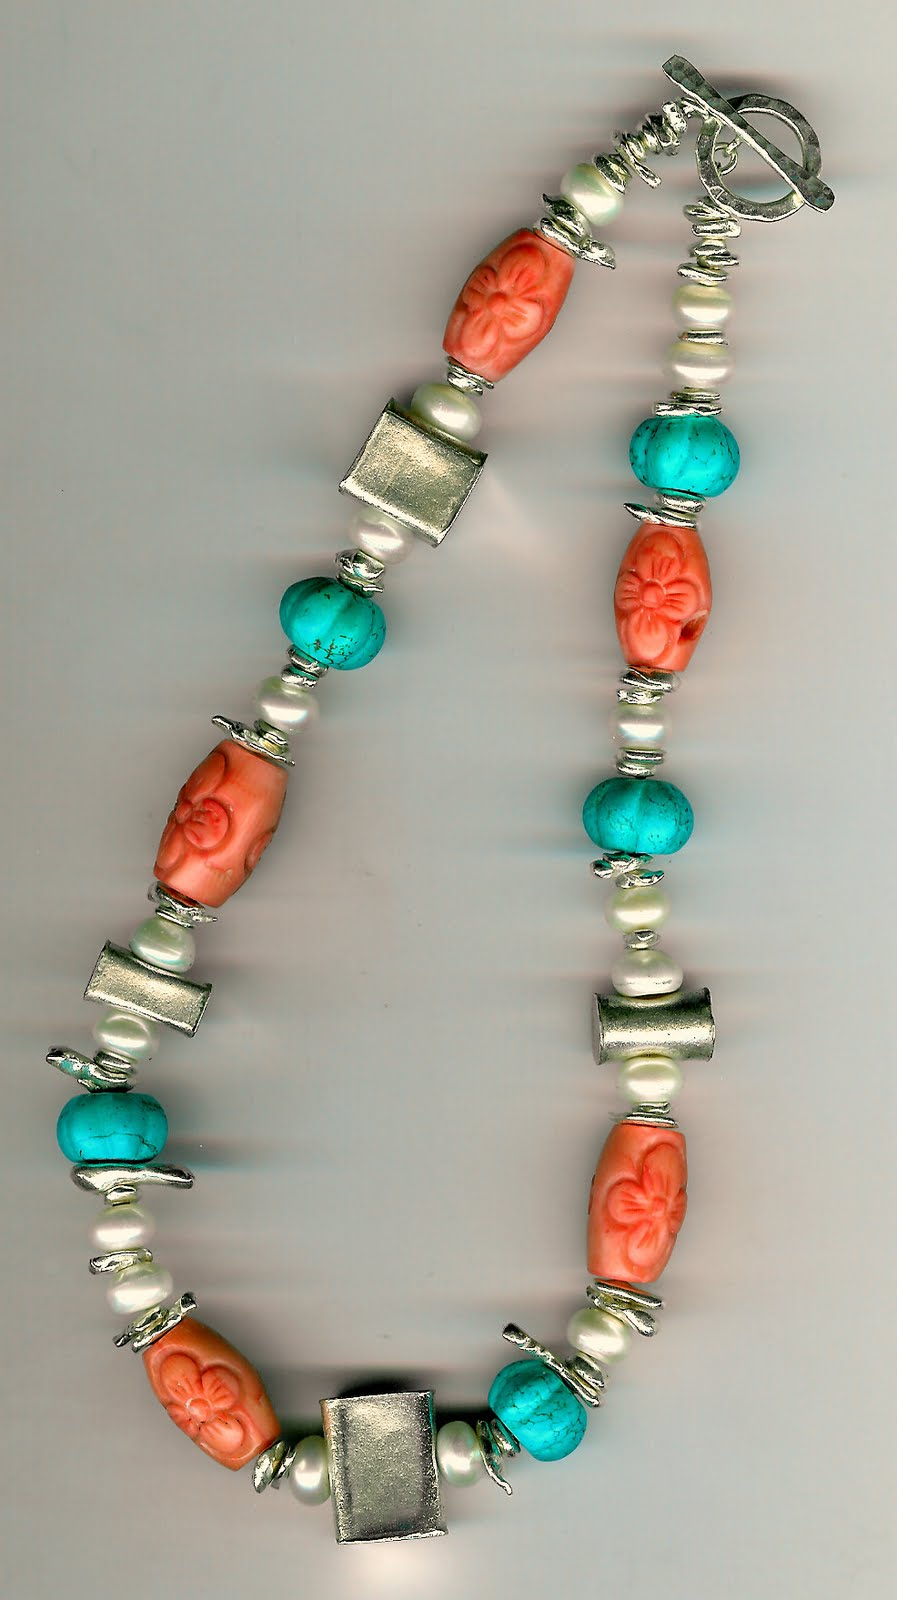 172. Coral, Turquoise, Freshwater pearls with Karen Hill Thai Sterling Silver + Earrings